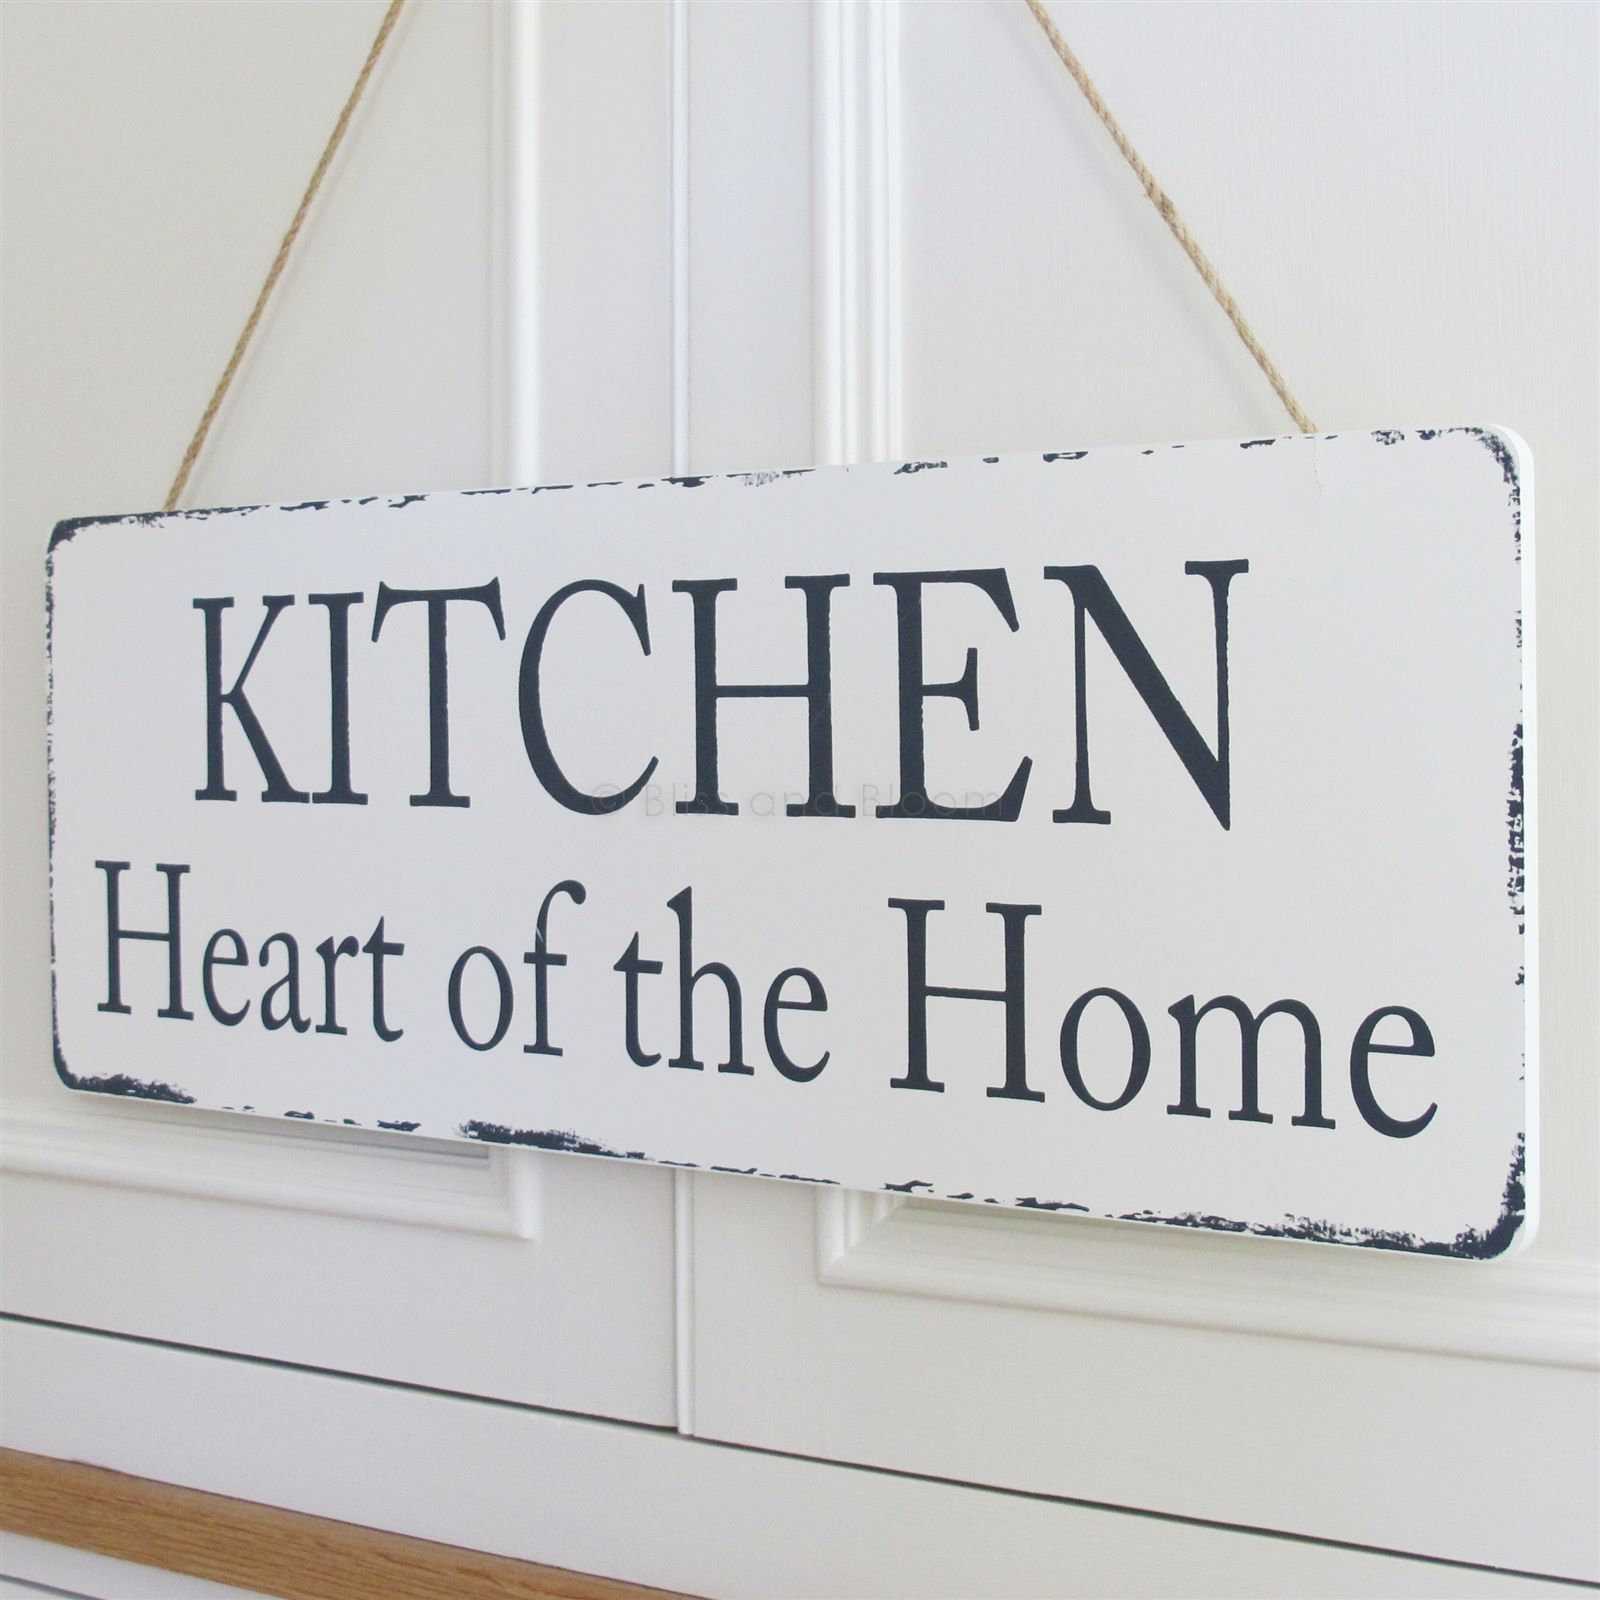 Kitchen Heart Of The Home Large Wooden Wall Plaque Painted Ivory In Colour With An Aged Effect Hangs From A Cord Plaques Signs